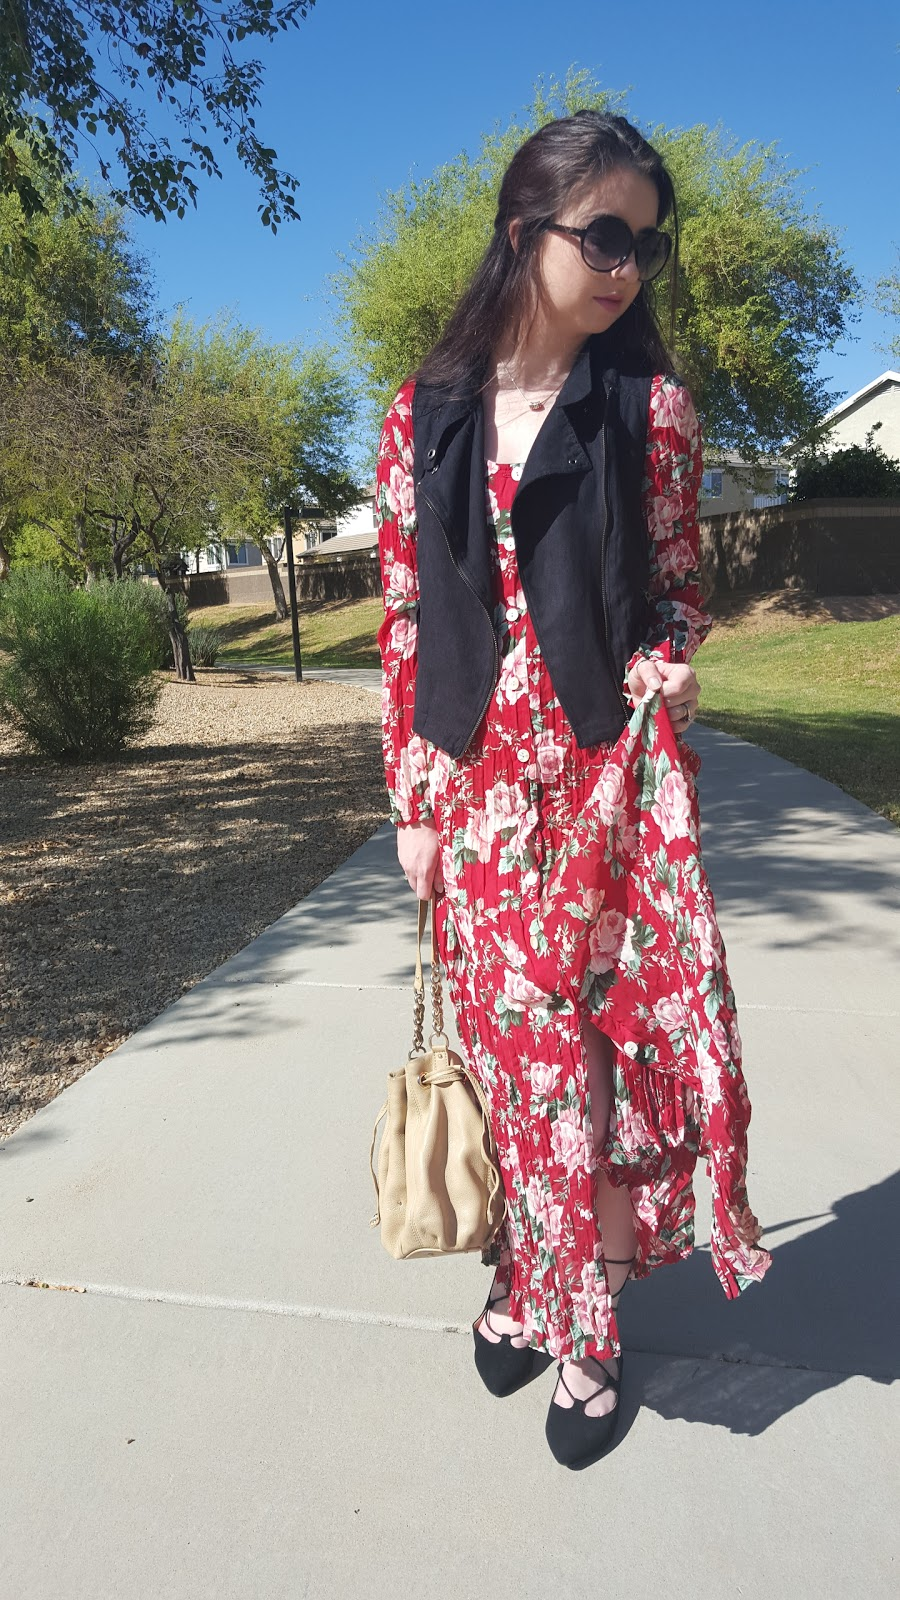 Floral Maxi Dress with suede vest and lace up flats